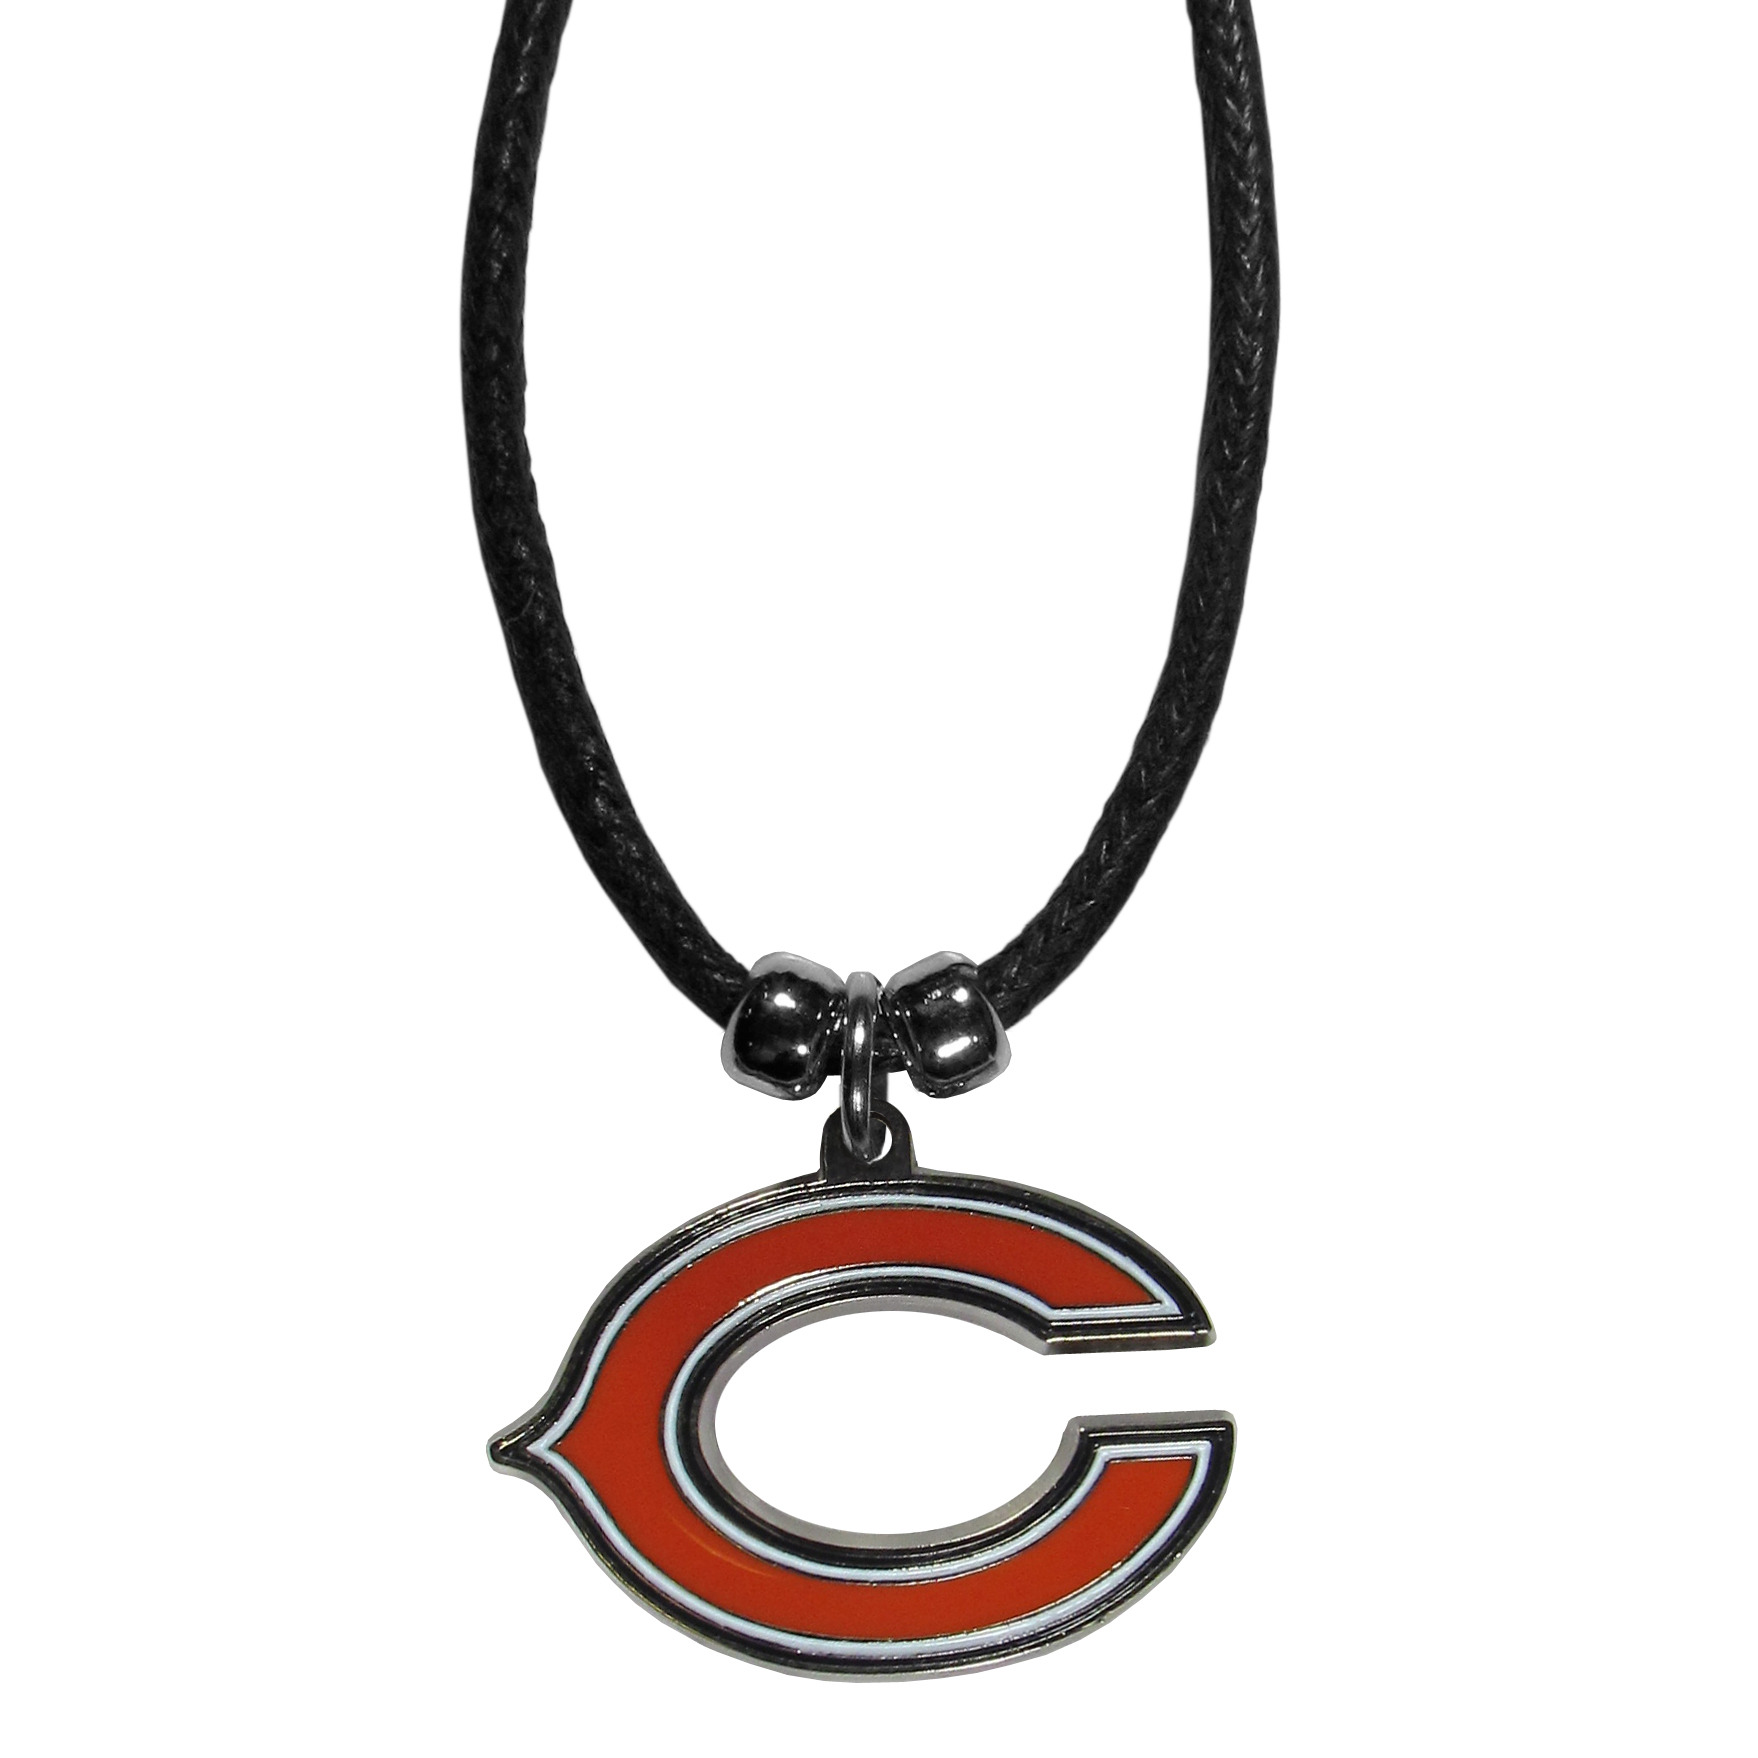 Chicago Bears Cord Necklace - This classic style cotton cord necklace features an extra large Chicago Bears pendant on a 21 inch cord.